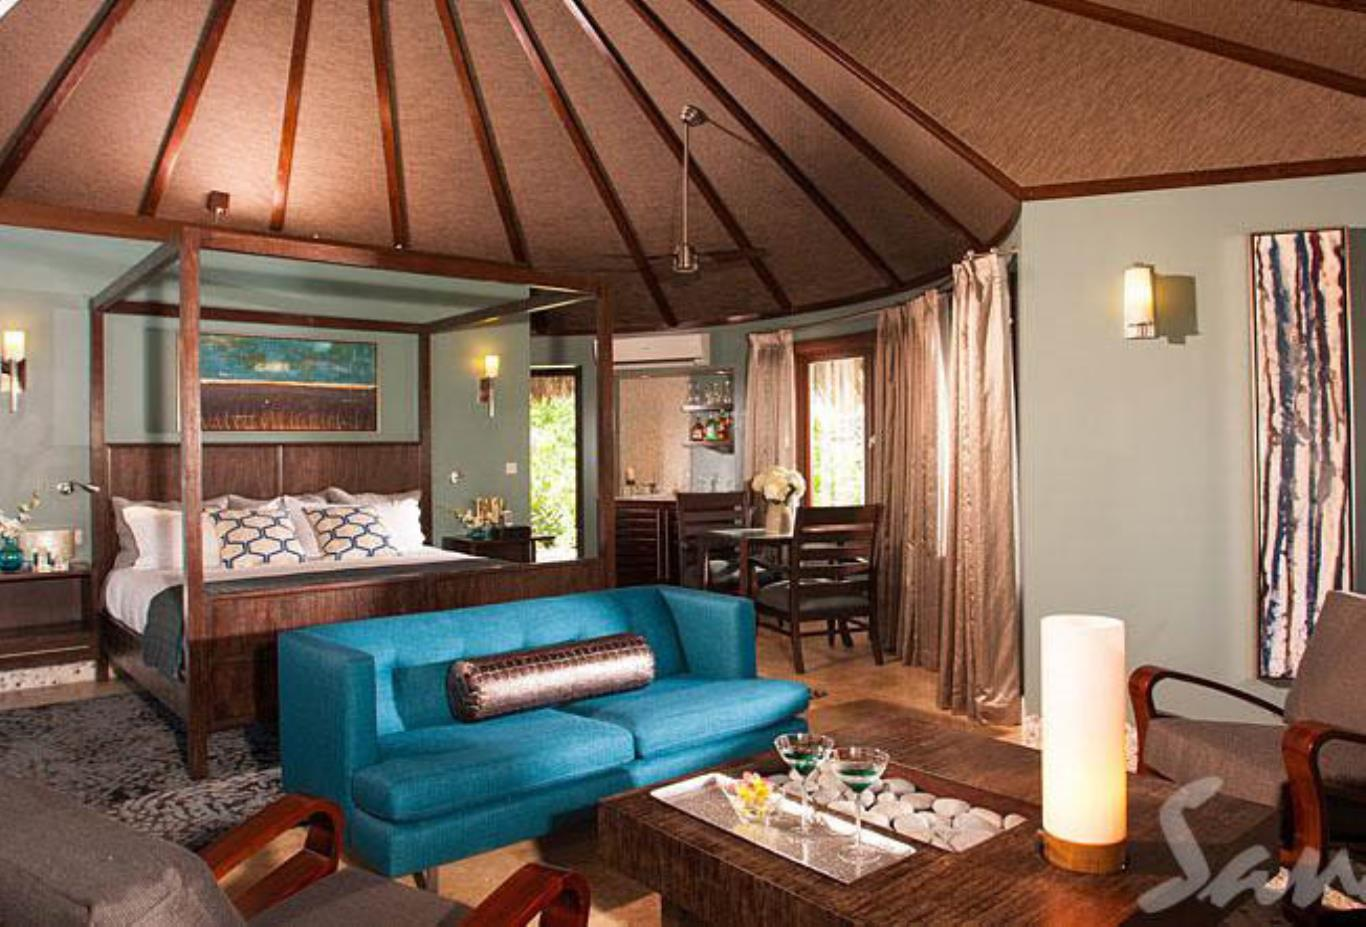 South Seas Grande Rondoval Butler Suite with Private Pool Sanctuary - RD 2